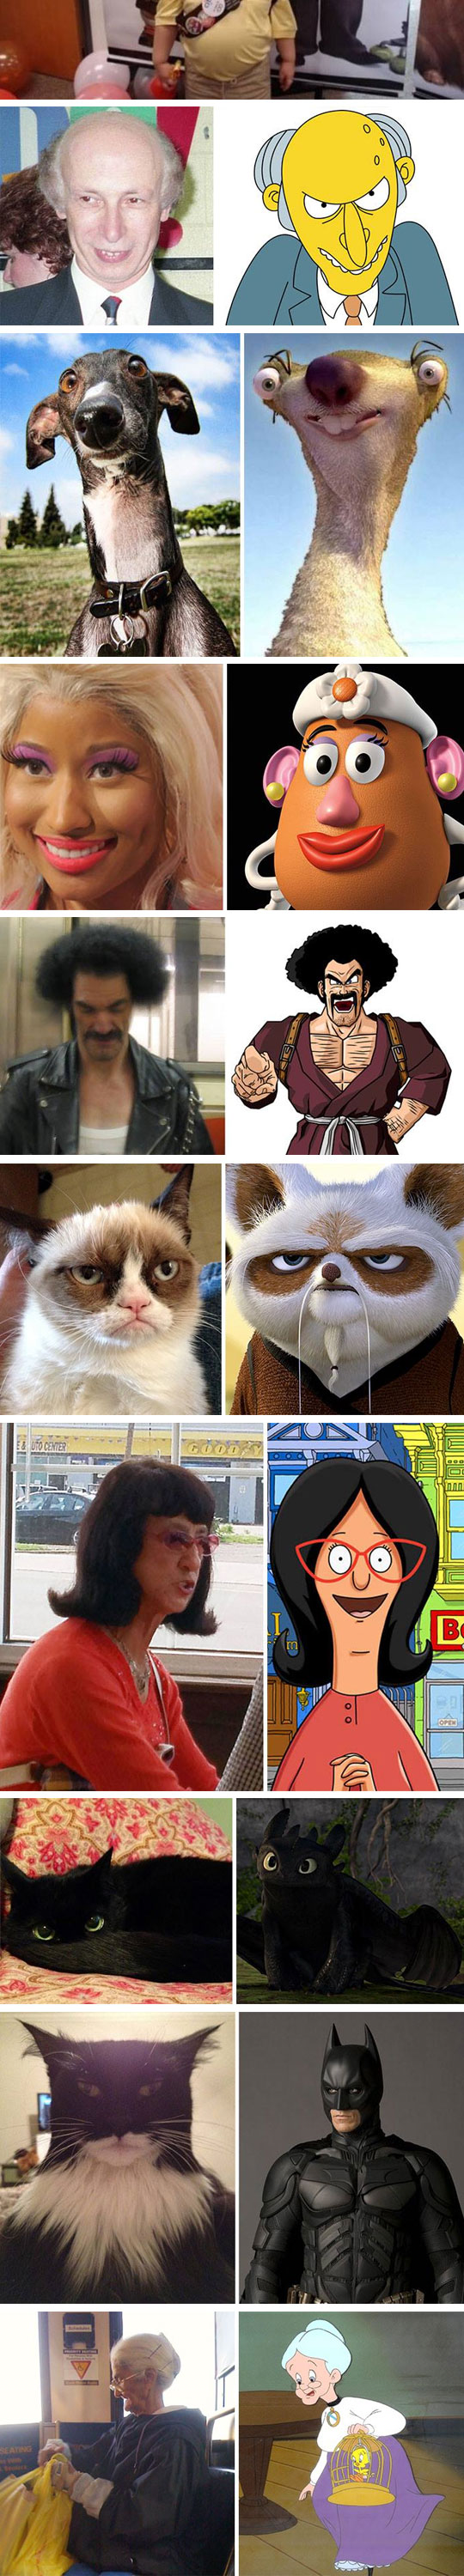 3-funny-batman-cat-lookalike-movies